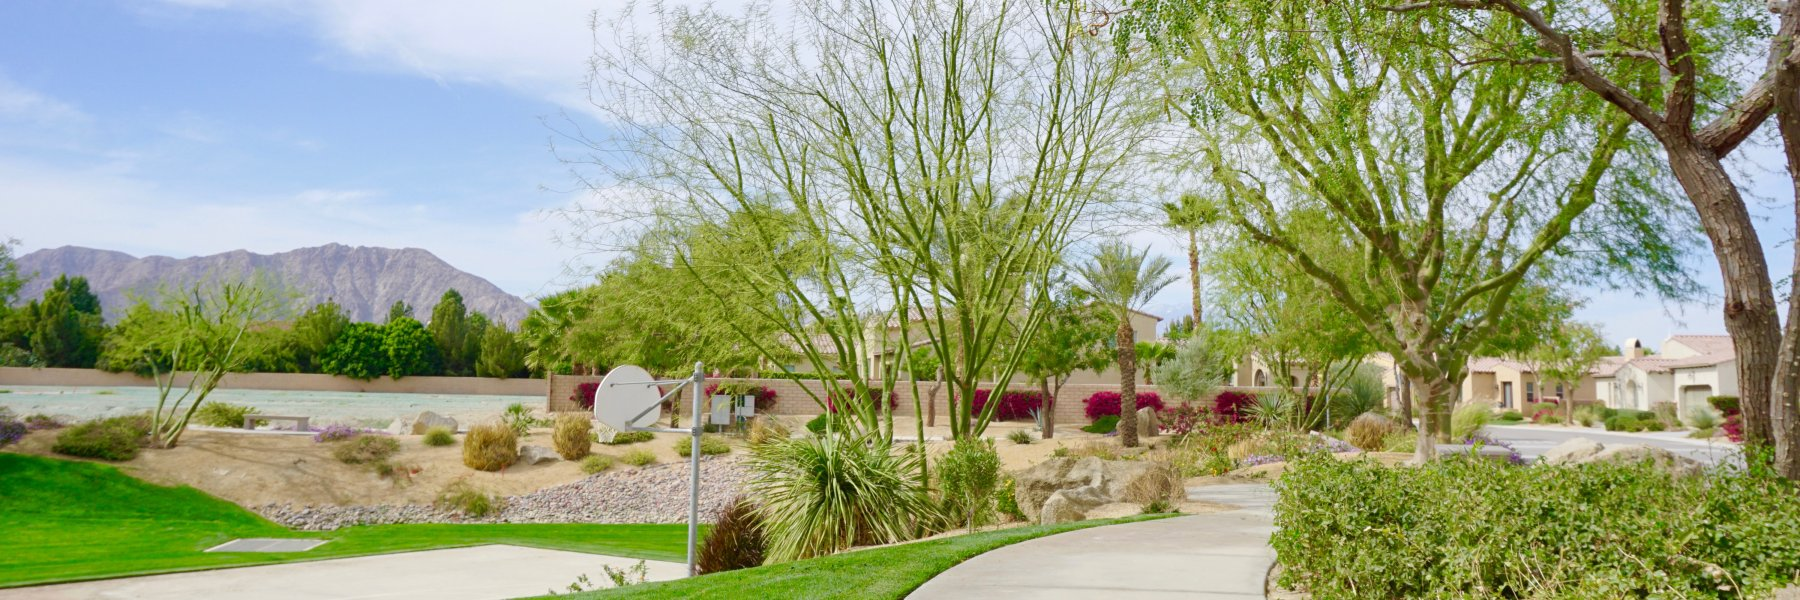 Carmela is a community of homes in La Quinta California